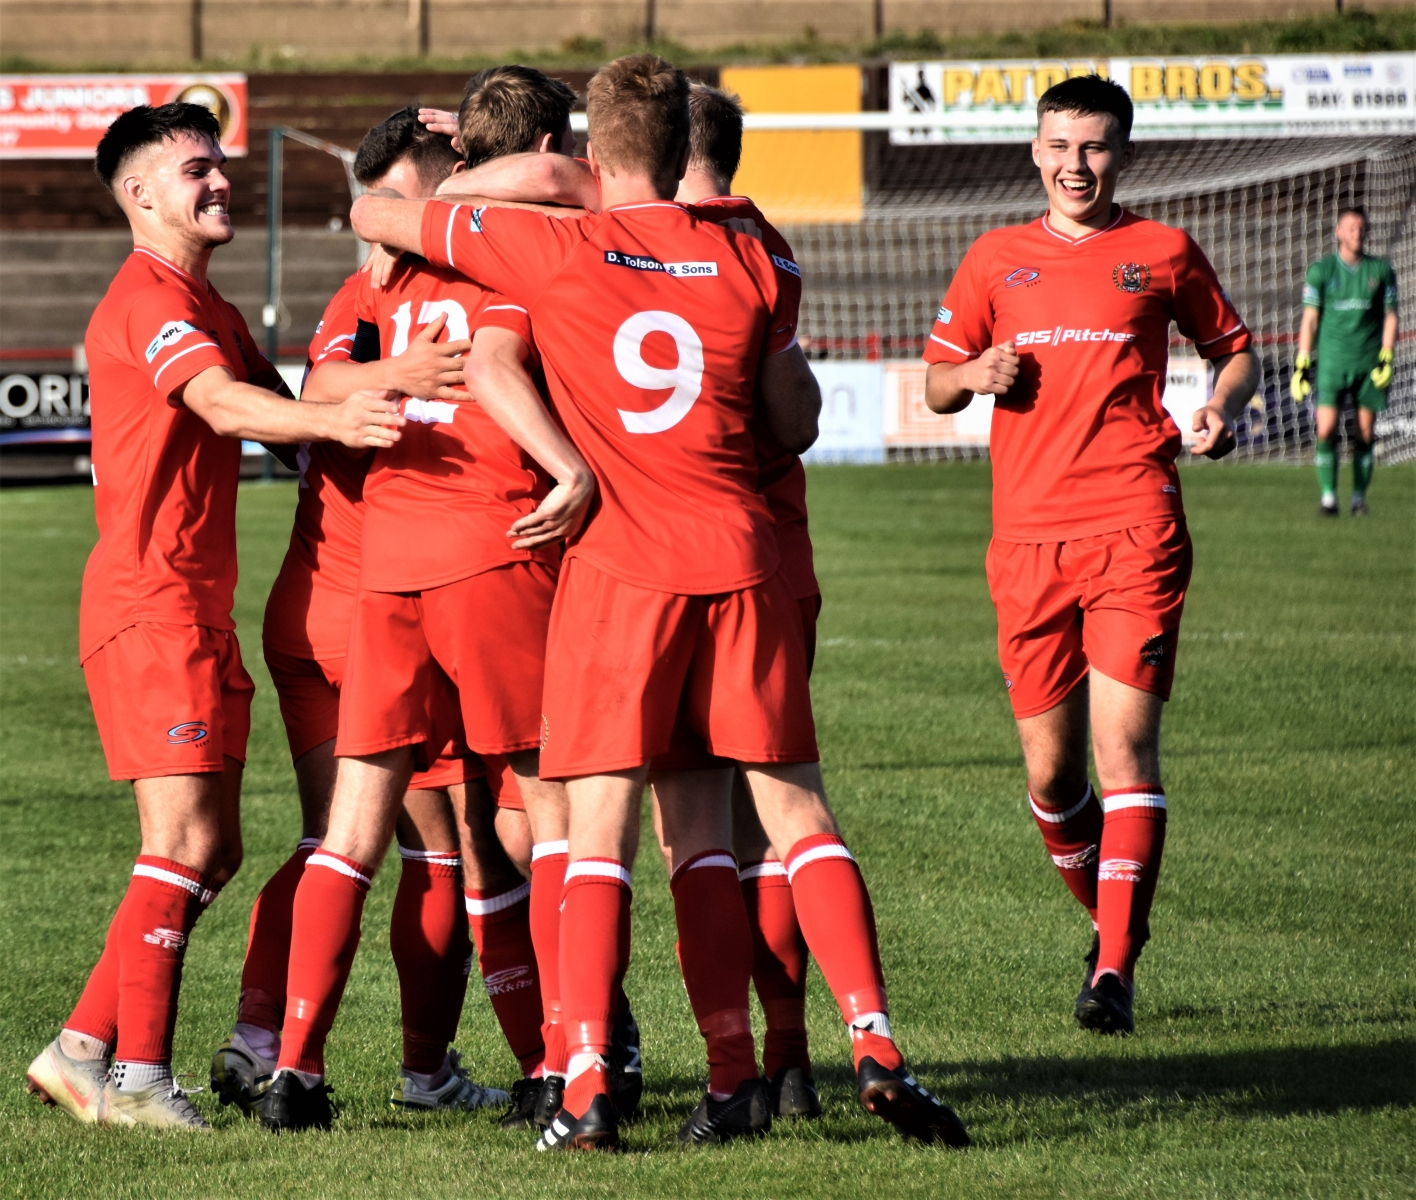 The-Reds-mob-Conor-Tinnion-after-his-corner-led-to-a-goal-Ben-Challis